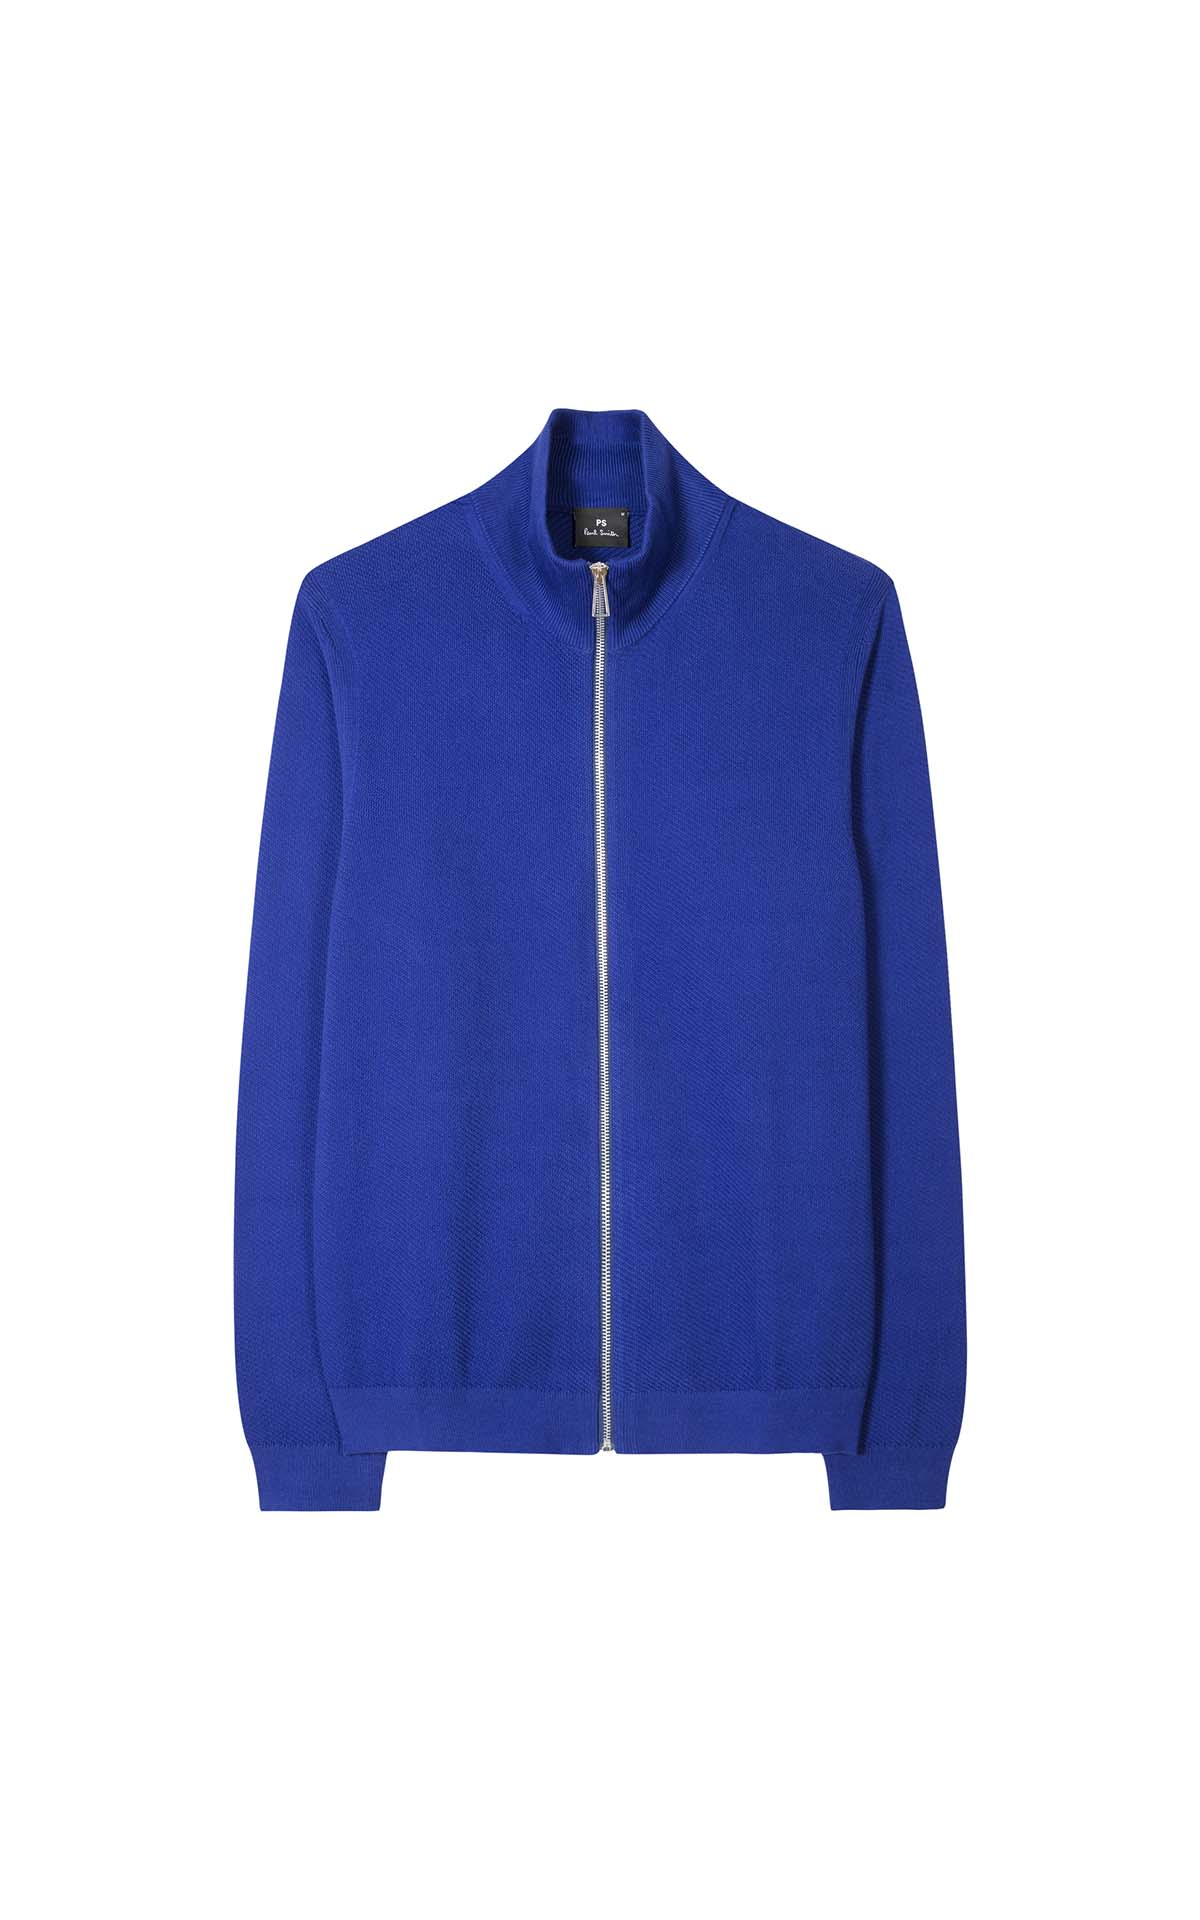 Paul Smith Women's pullover zip cardigan at The Bicester Village Shopping Collection